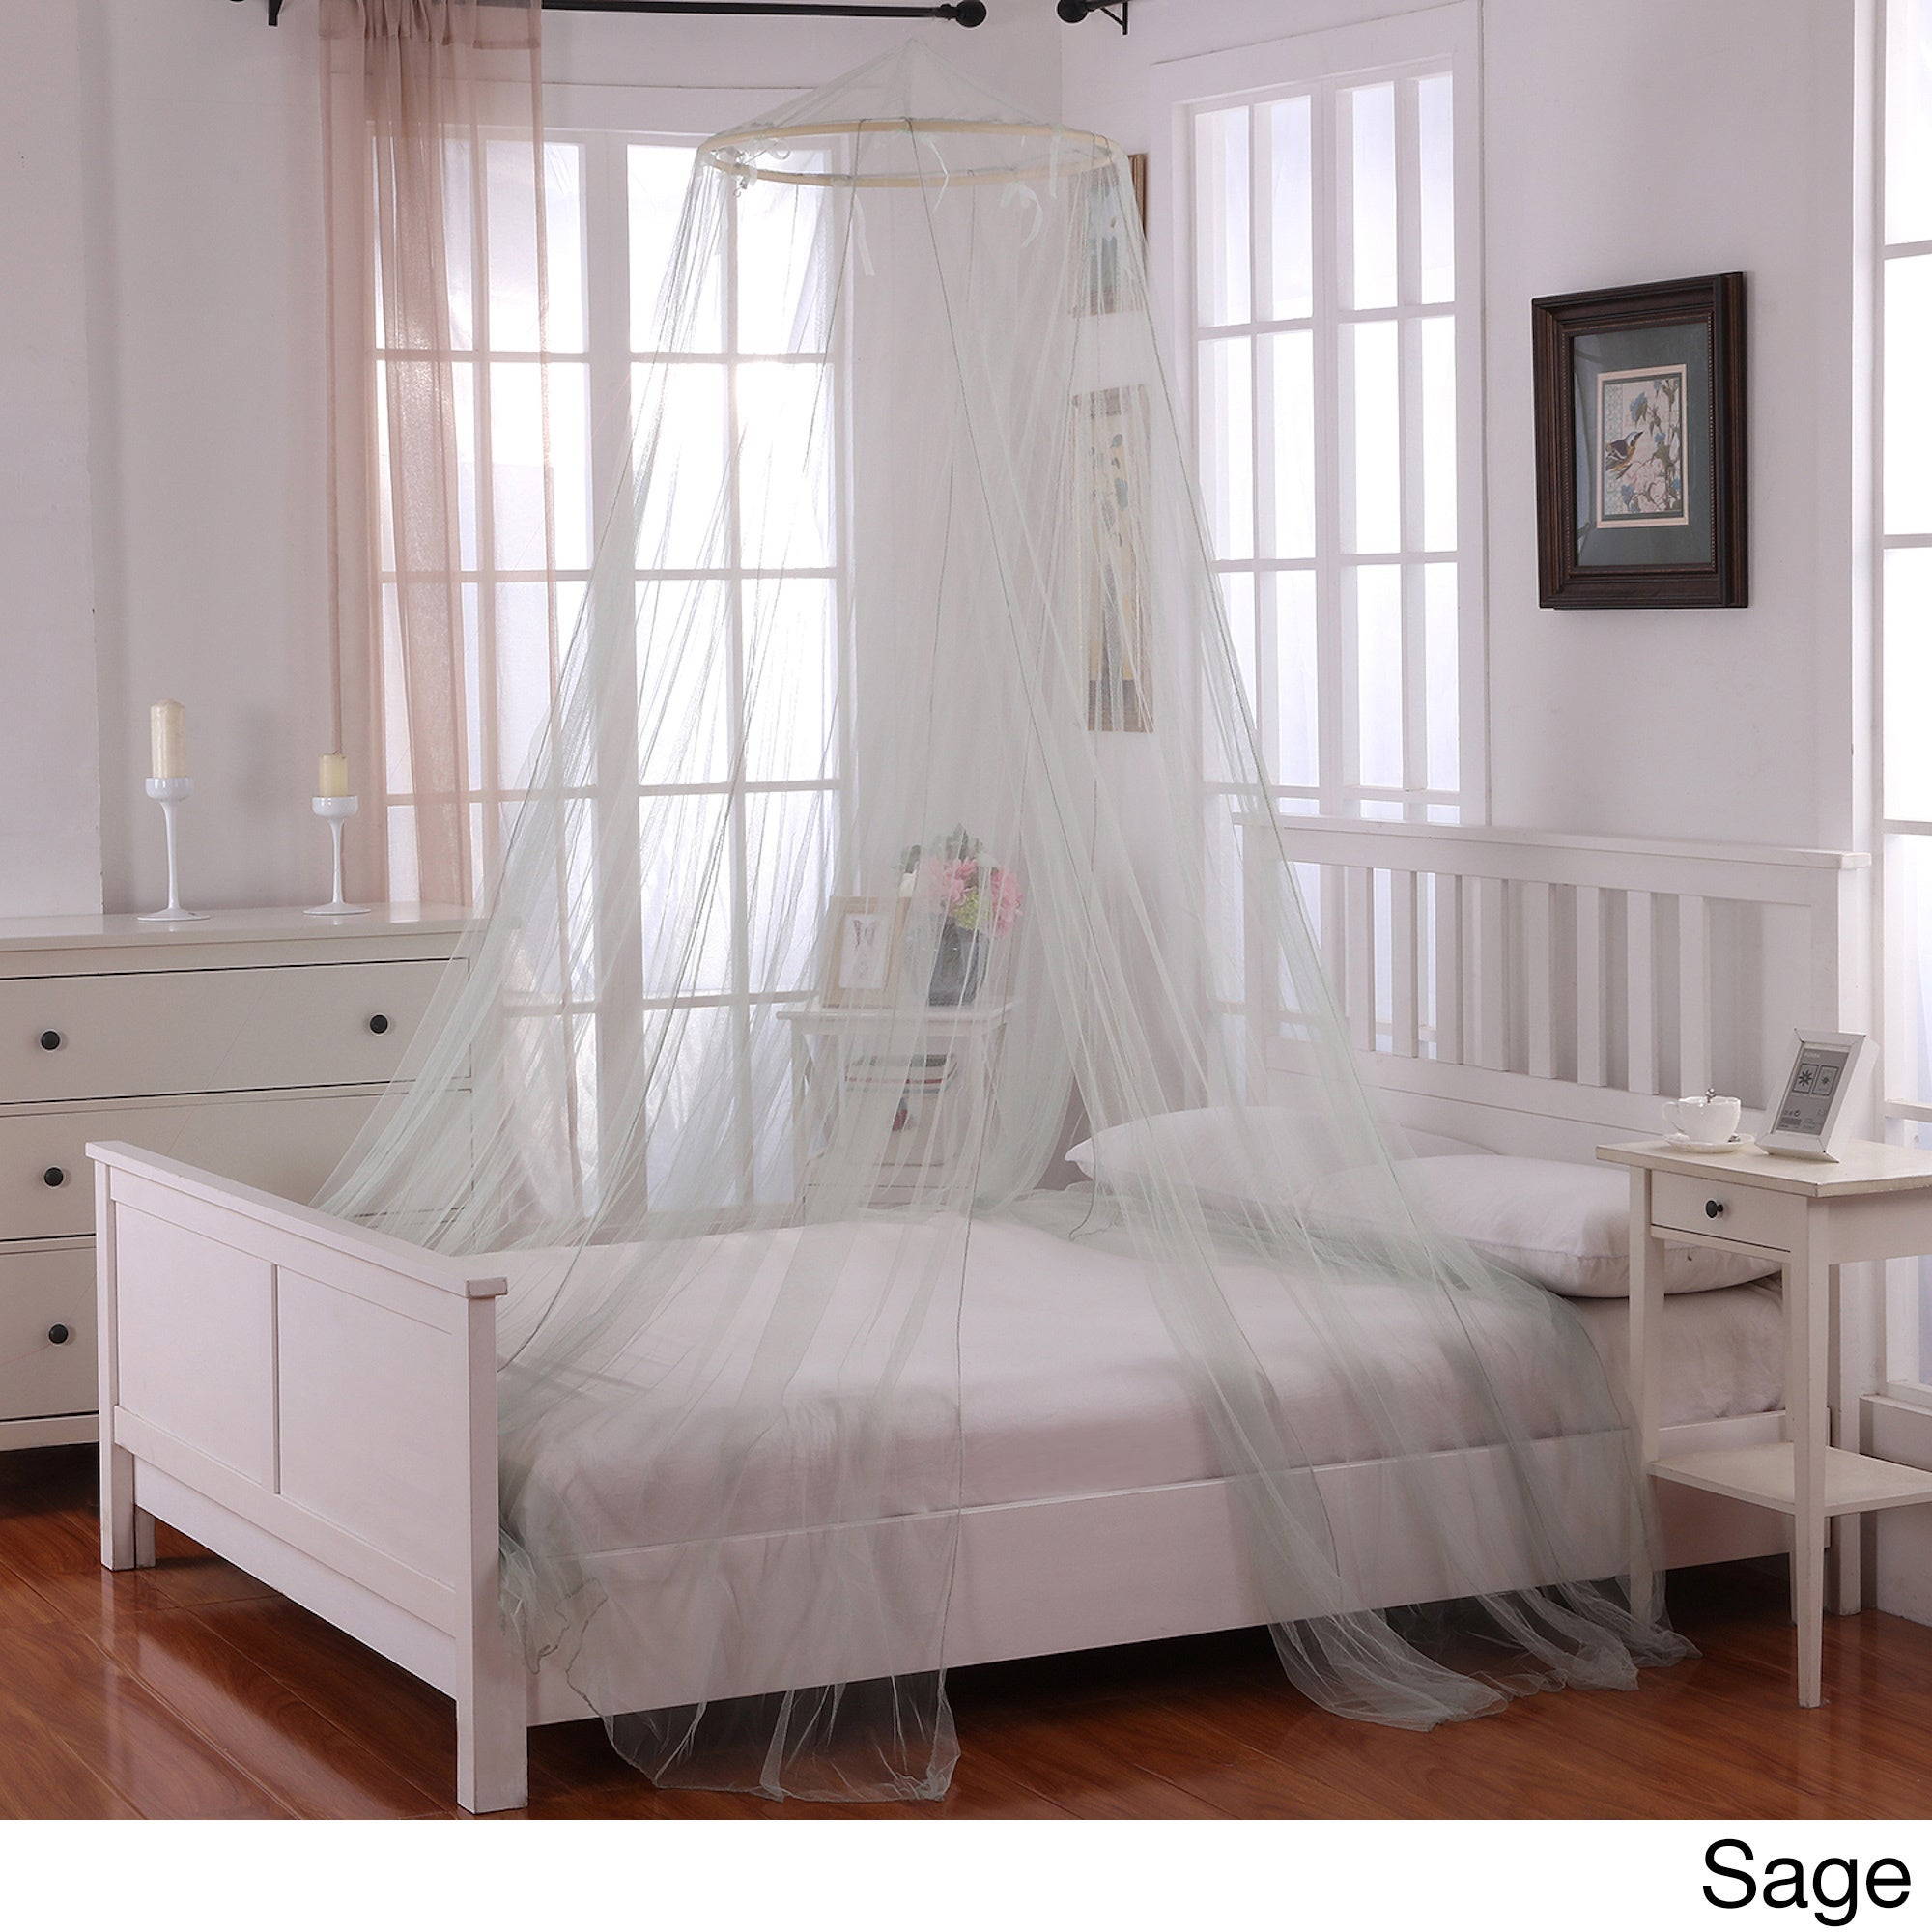 Oasis Round Hoop Bed Canopy - Free Shipping On Orders Over $45 - Overstock.com - 13936025 & Oasis Round Hoop Bed Canopy - Free Shipping On Orders Over $45 ...